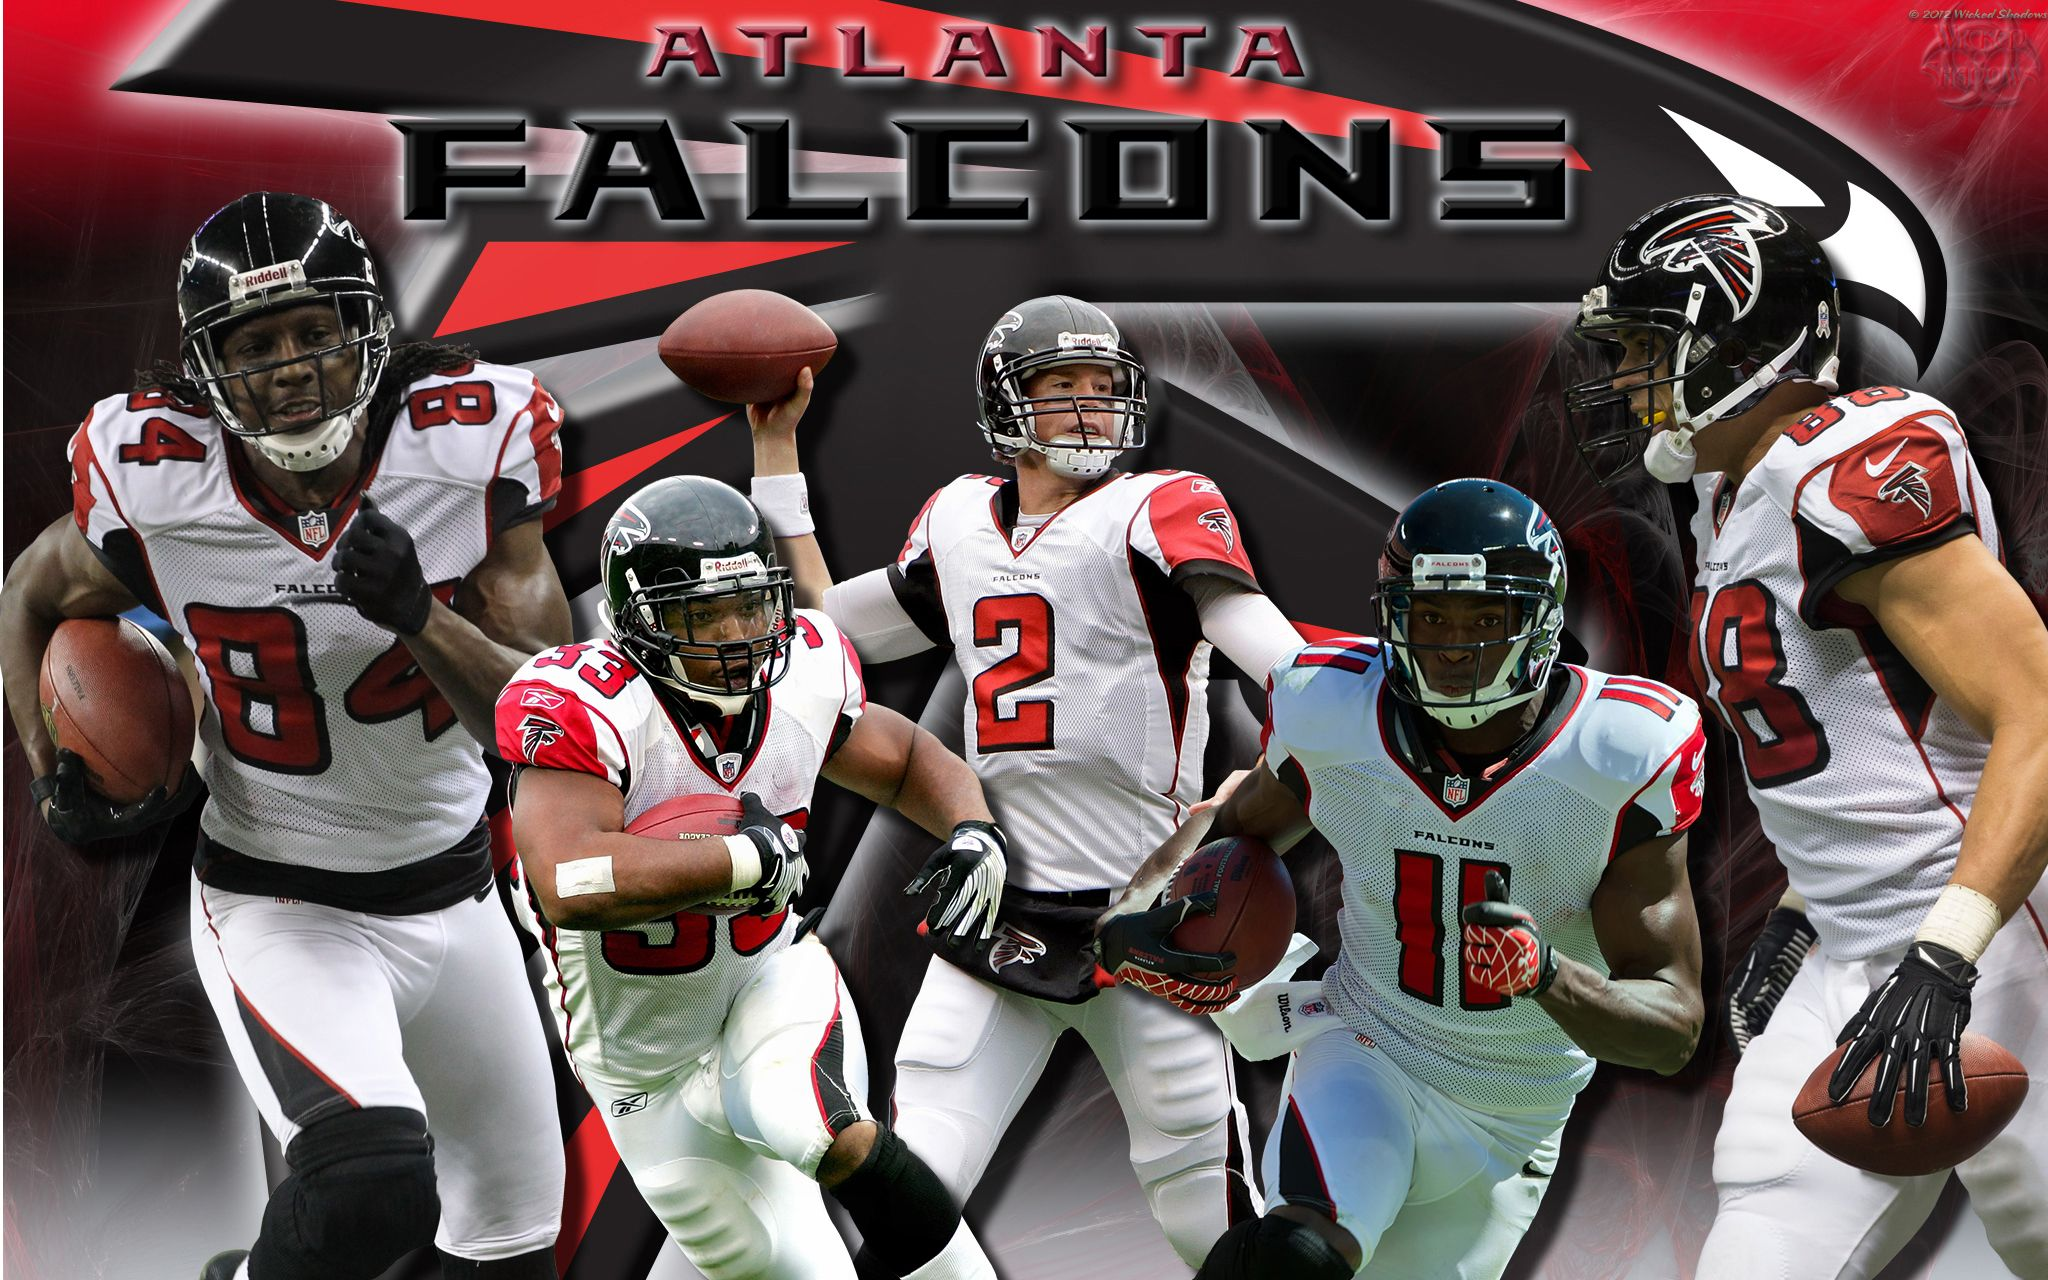 Atlanta Falcons Vs Carolina Panthers Chirstmas Eve Nfl Online Atlanta Falcons Wallpaper Atlanta Falcons Atlanta Falcons Pictures